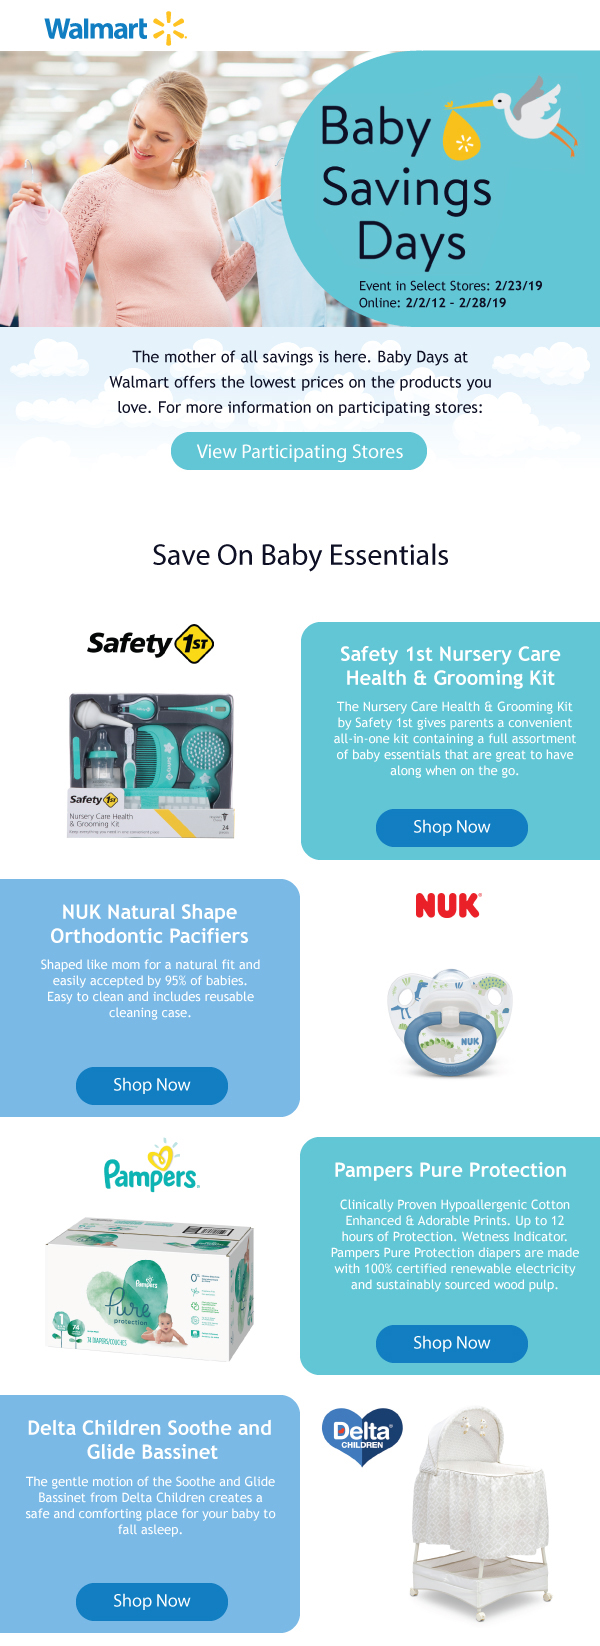 Baby Savings Days Walmart